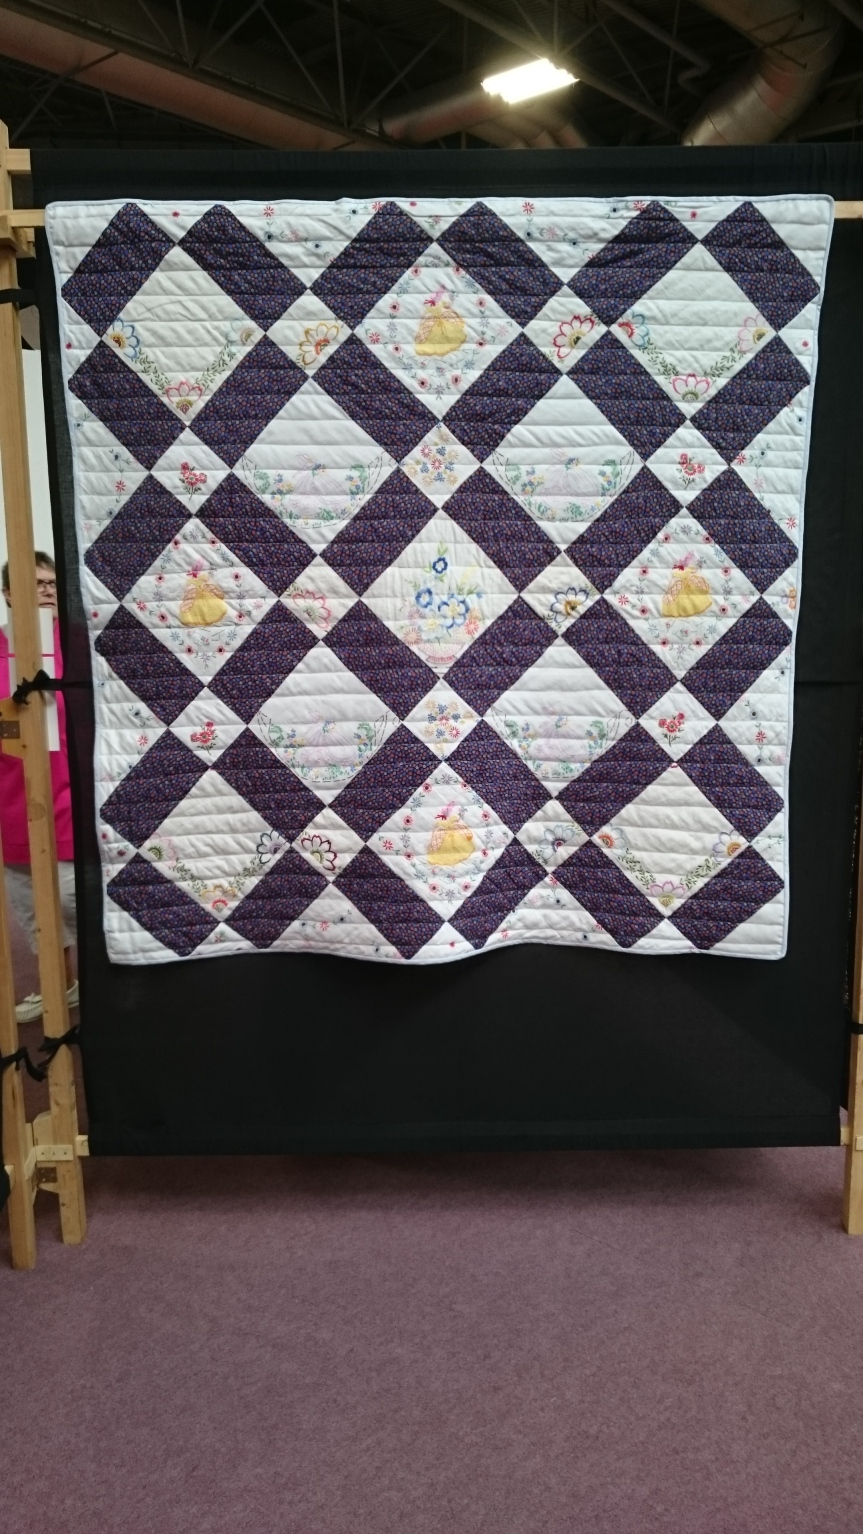 'Forget me not' Festival of Quilts 2016